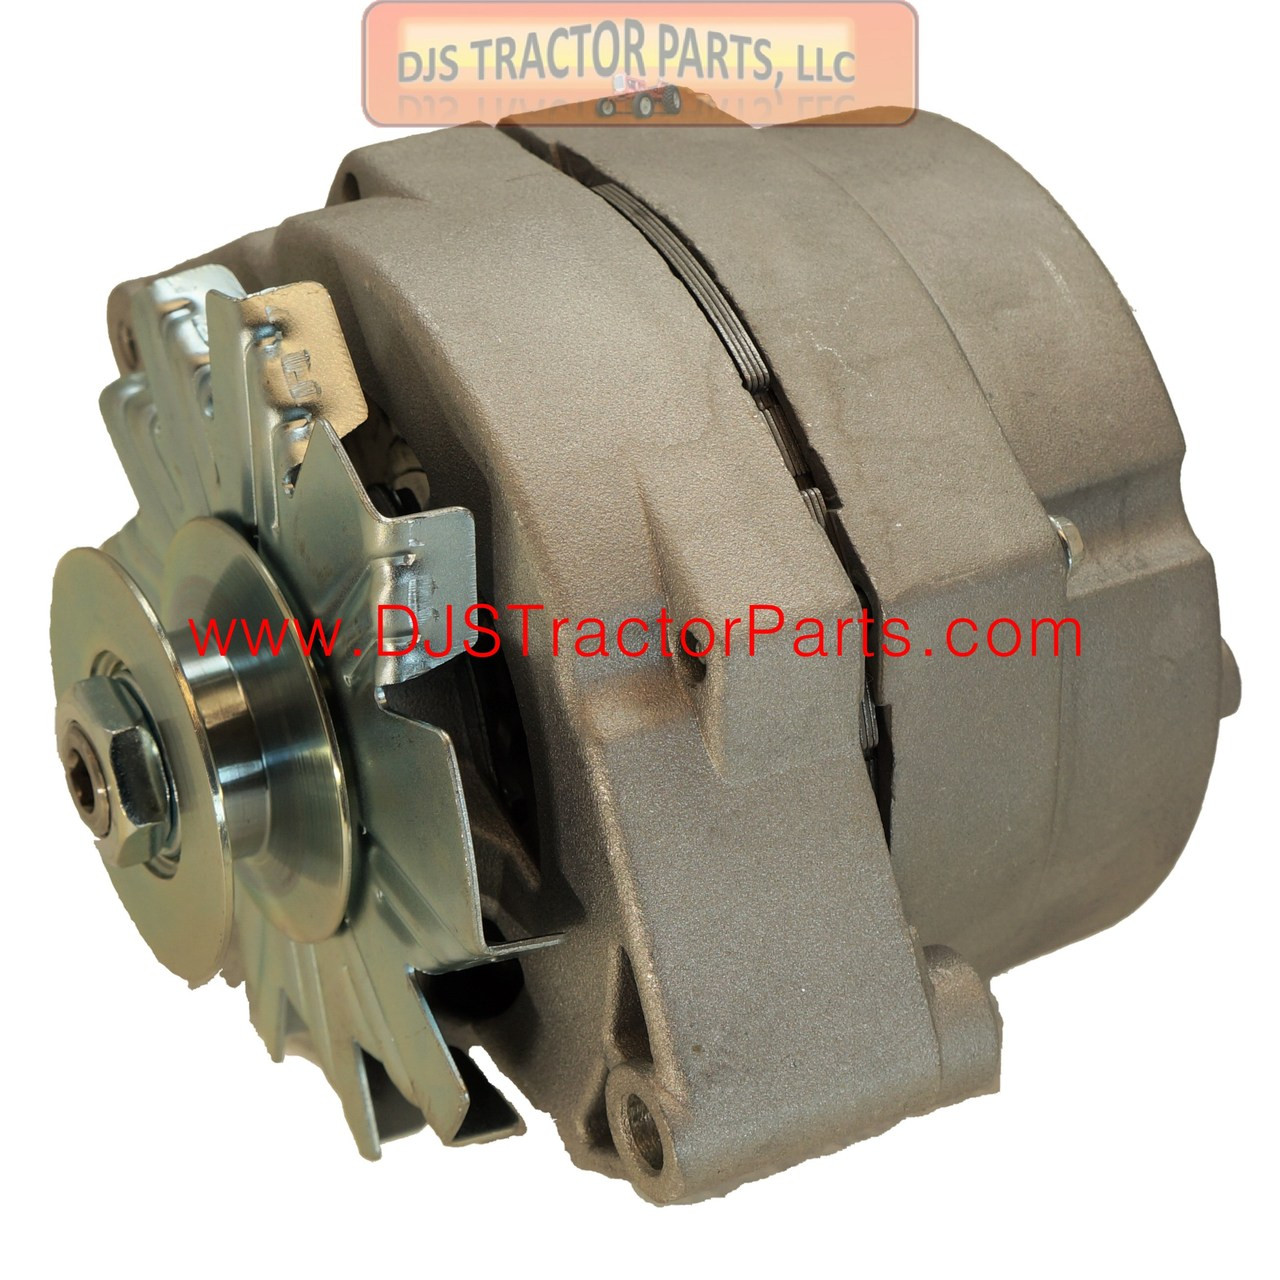 medium resolution of 63 amp one wire alternator with pulley used for converting 6 volt to 12 volt ab 418d djs tractor parts llc